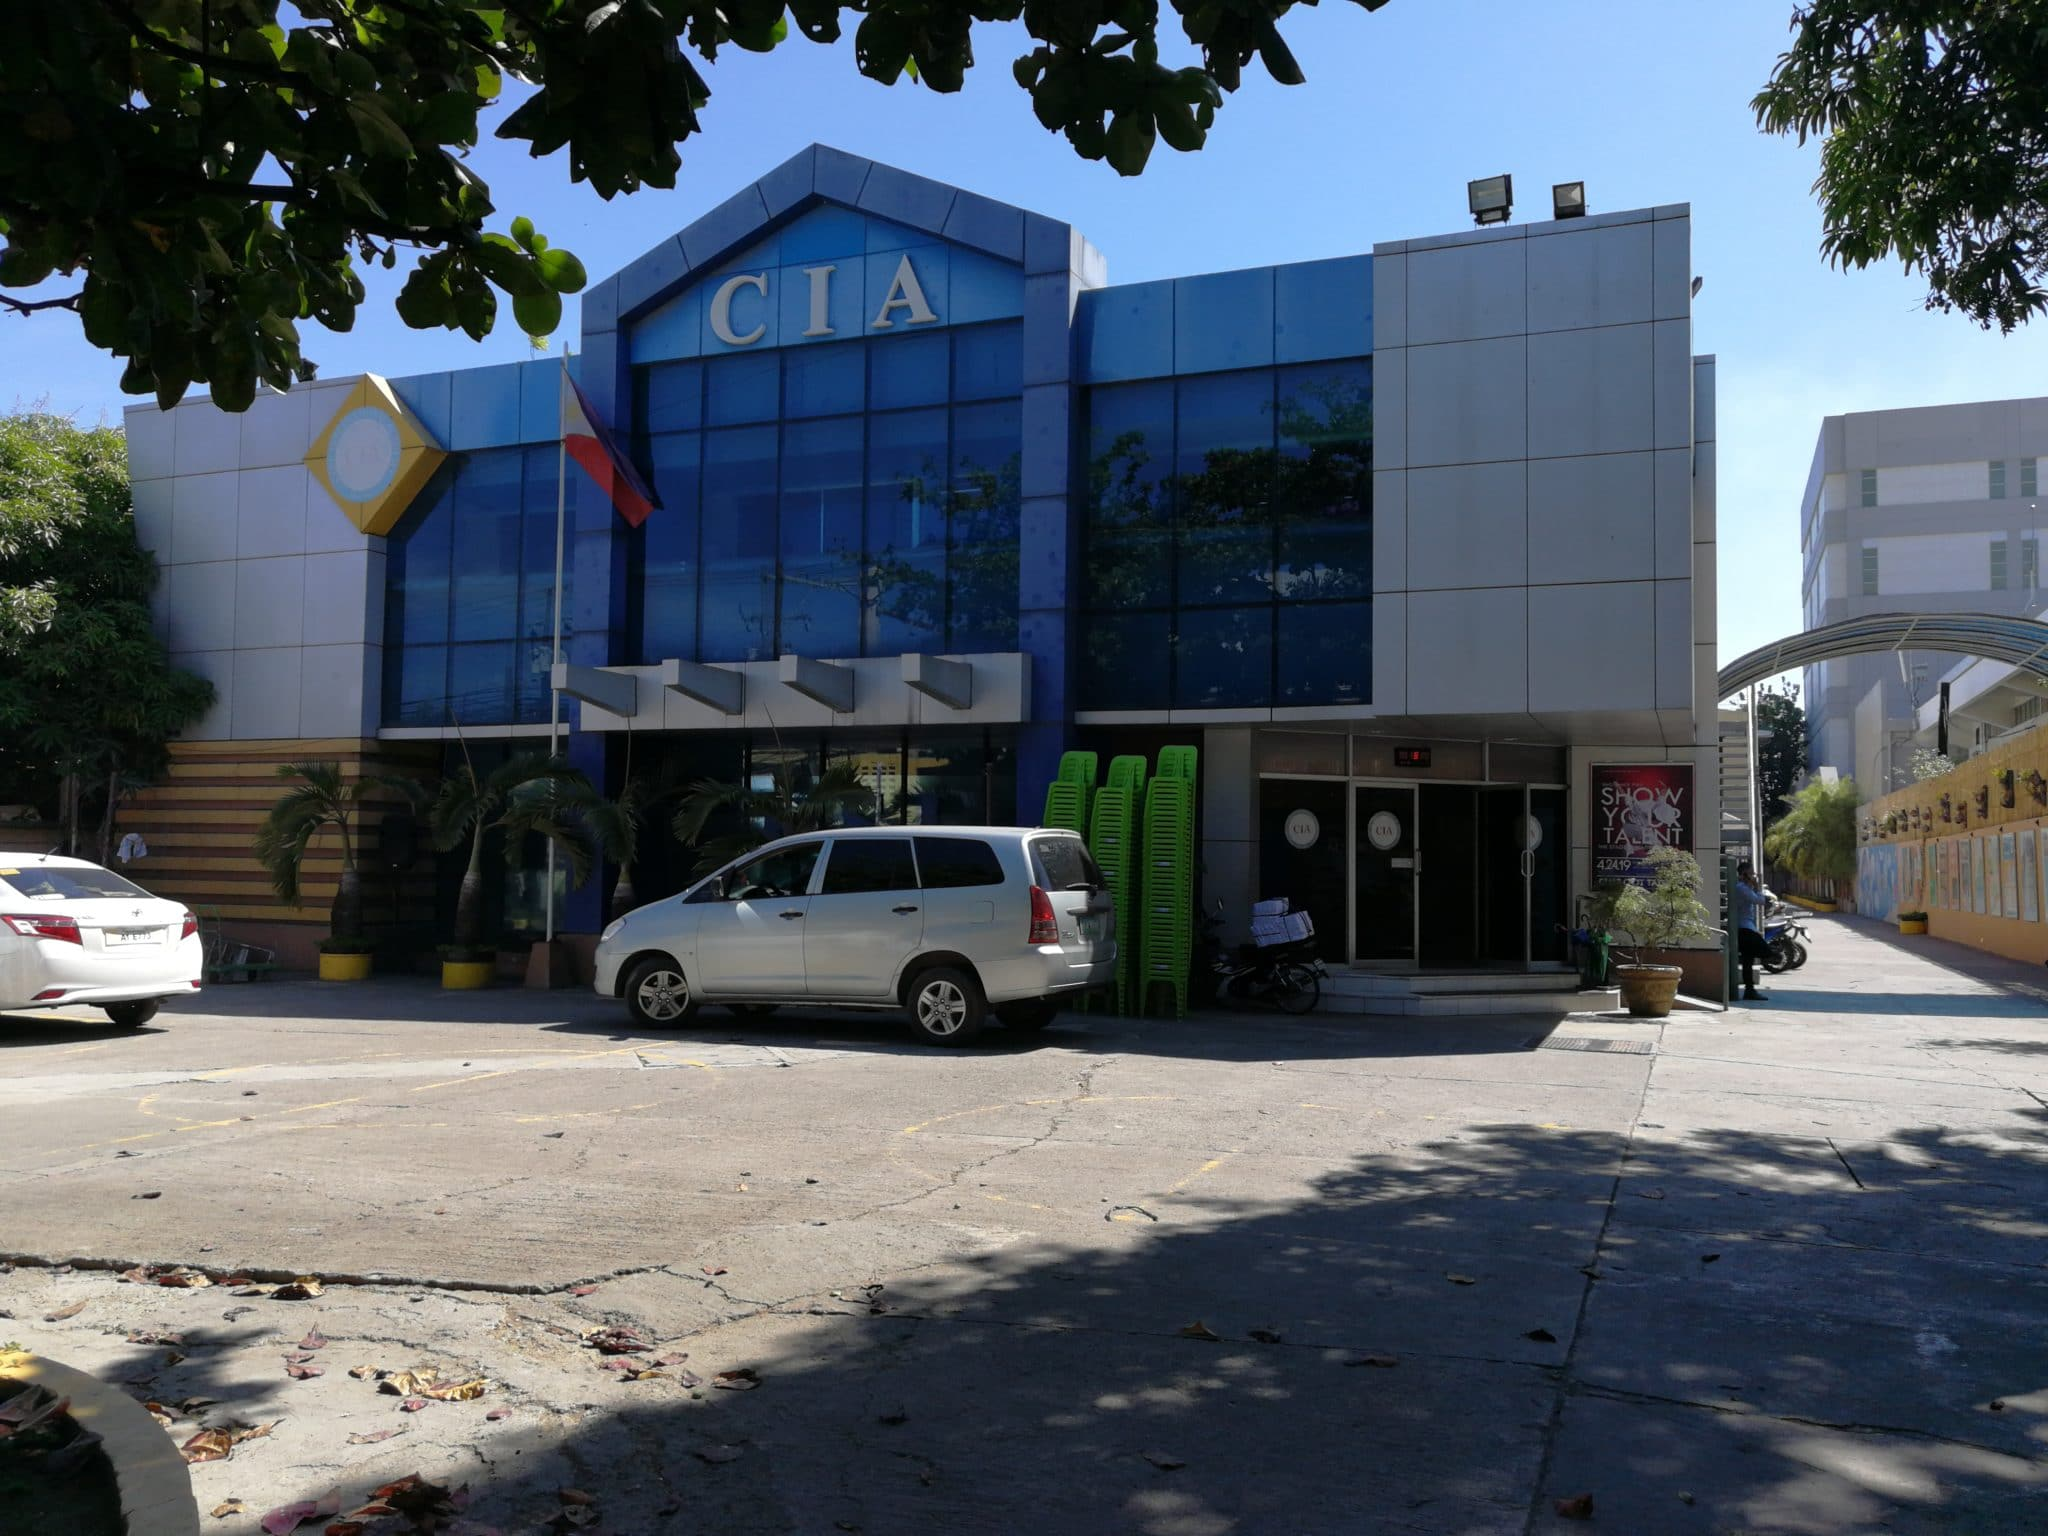 CIA(Cebu International Academy)